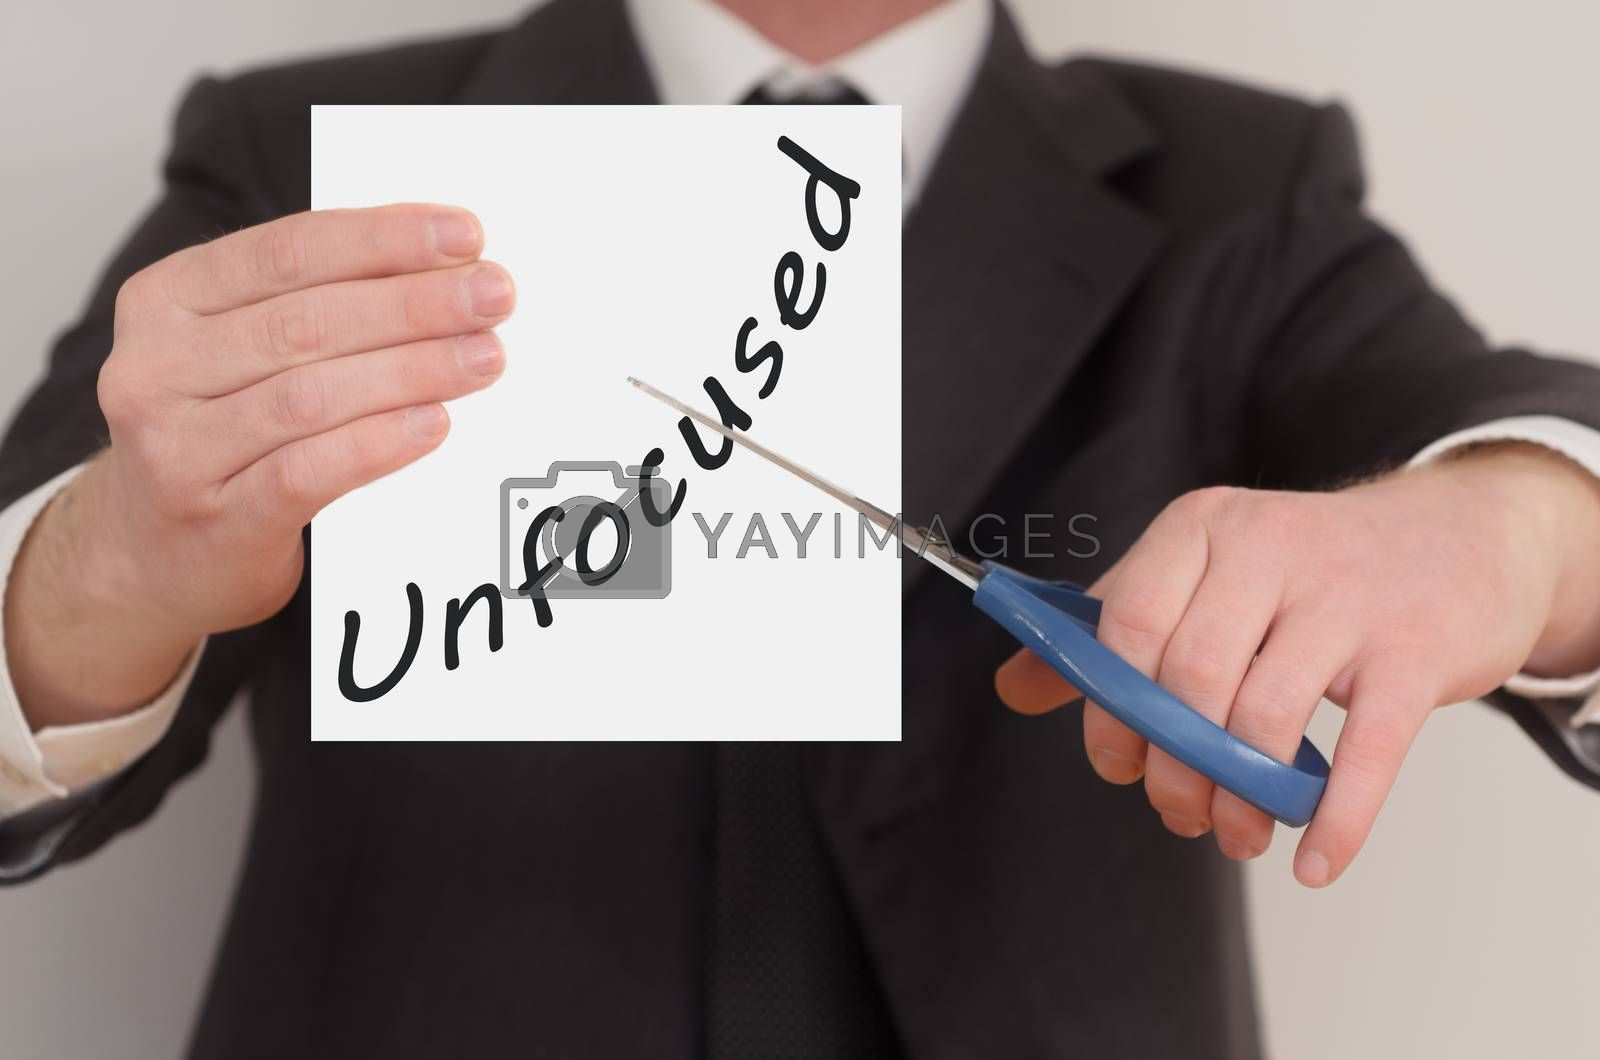 Unfocused, man in suit cutting text on paper with scissors